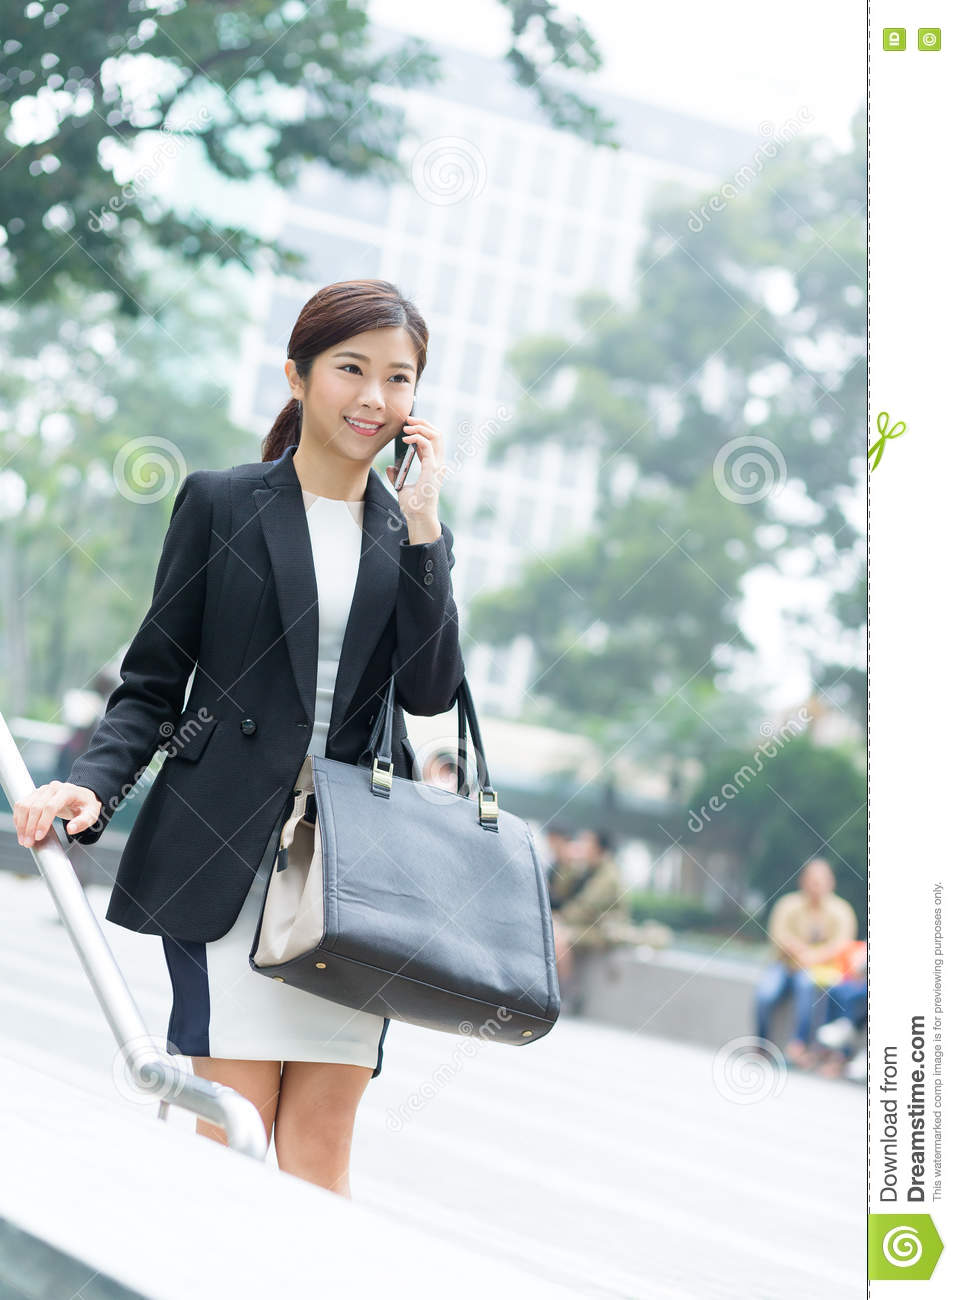 Buisness woman chat on mobile phone